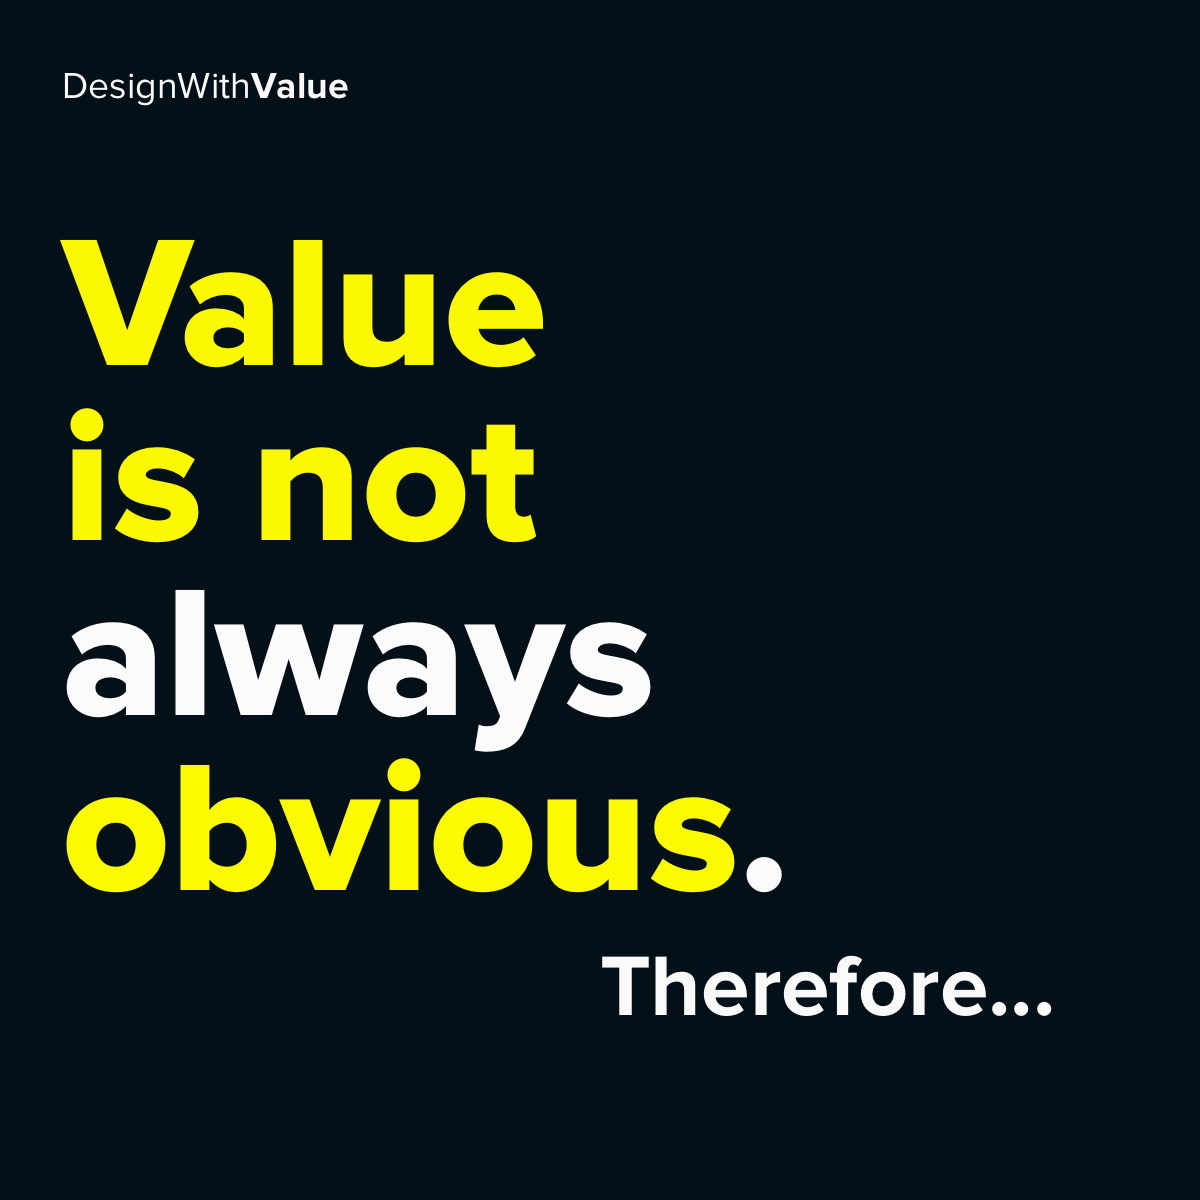 Value is not always obvious. Therefore...